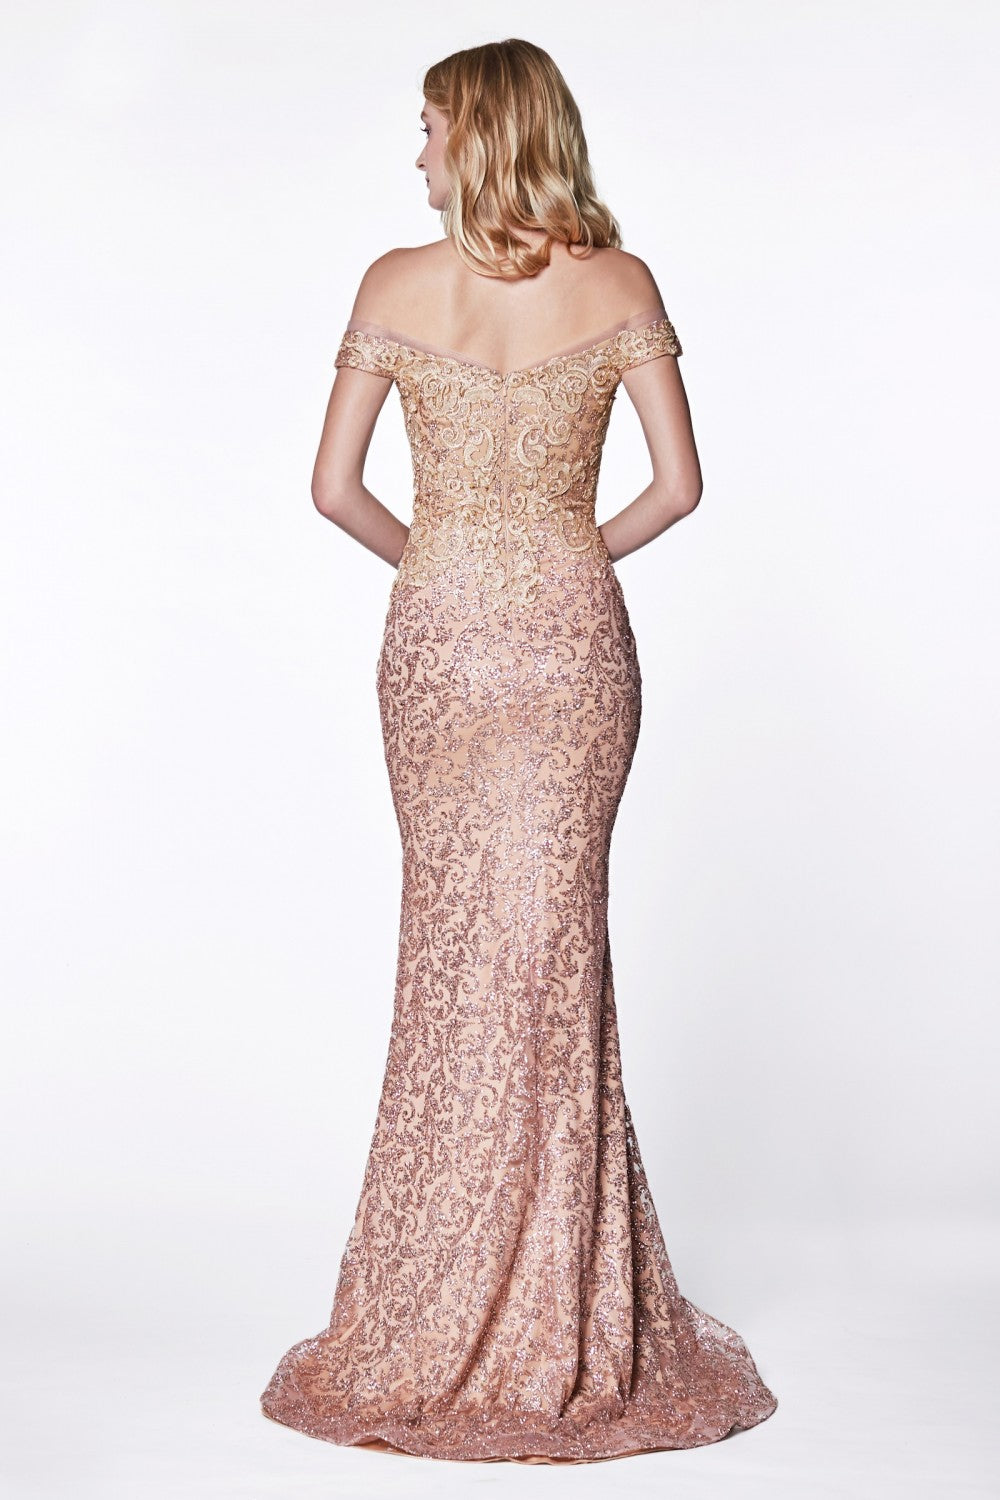 Off The Shoulder Fitted Gown With Glitter And Beaded Lace Details